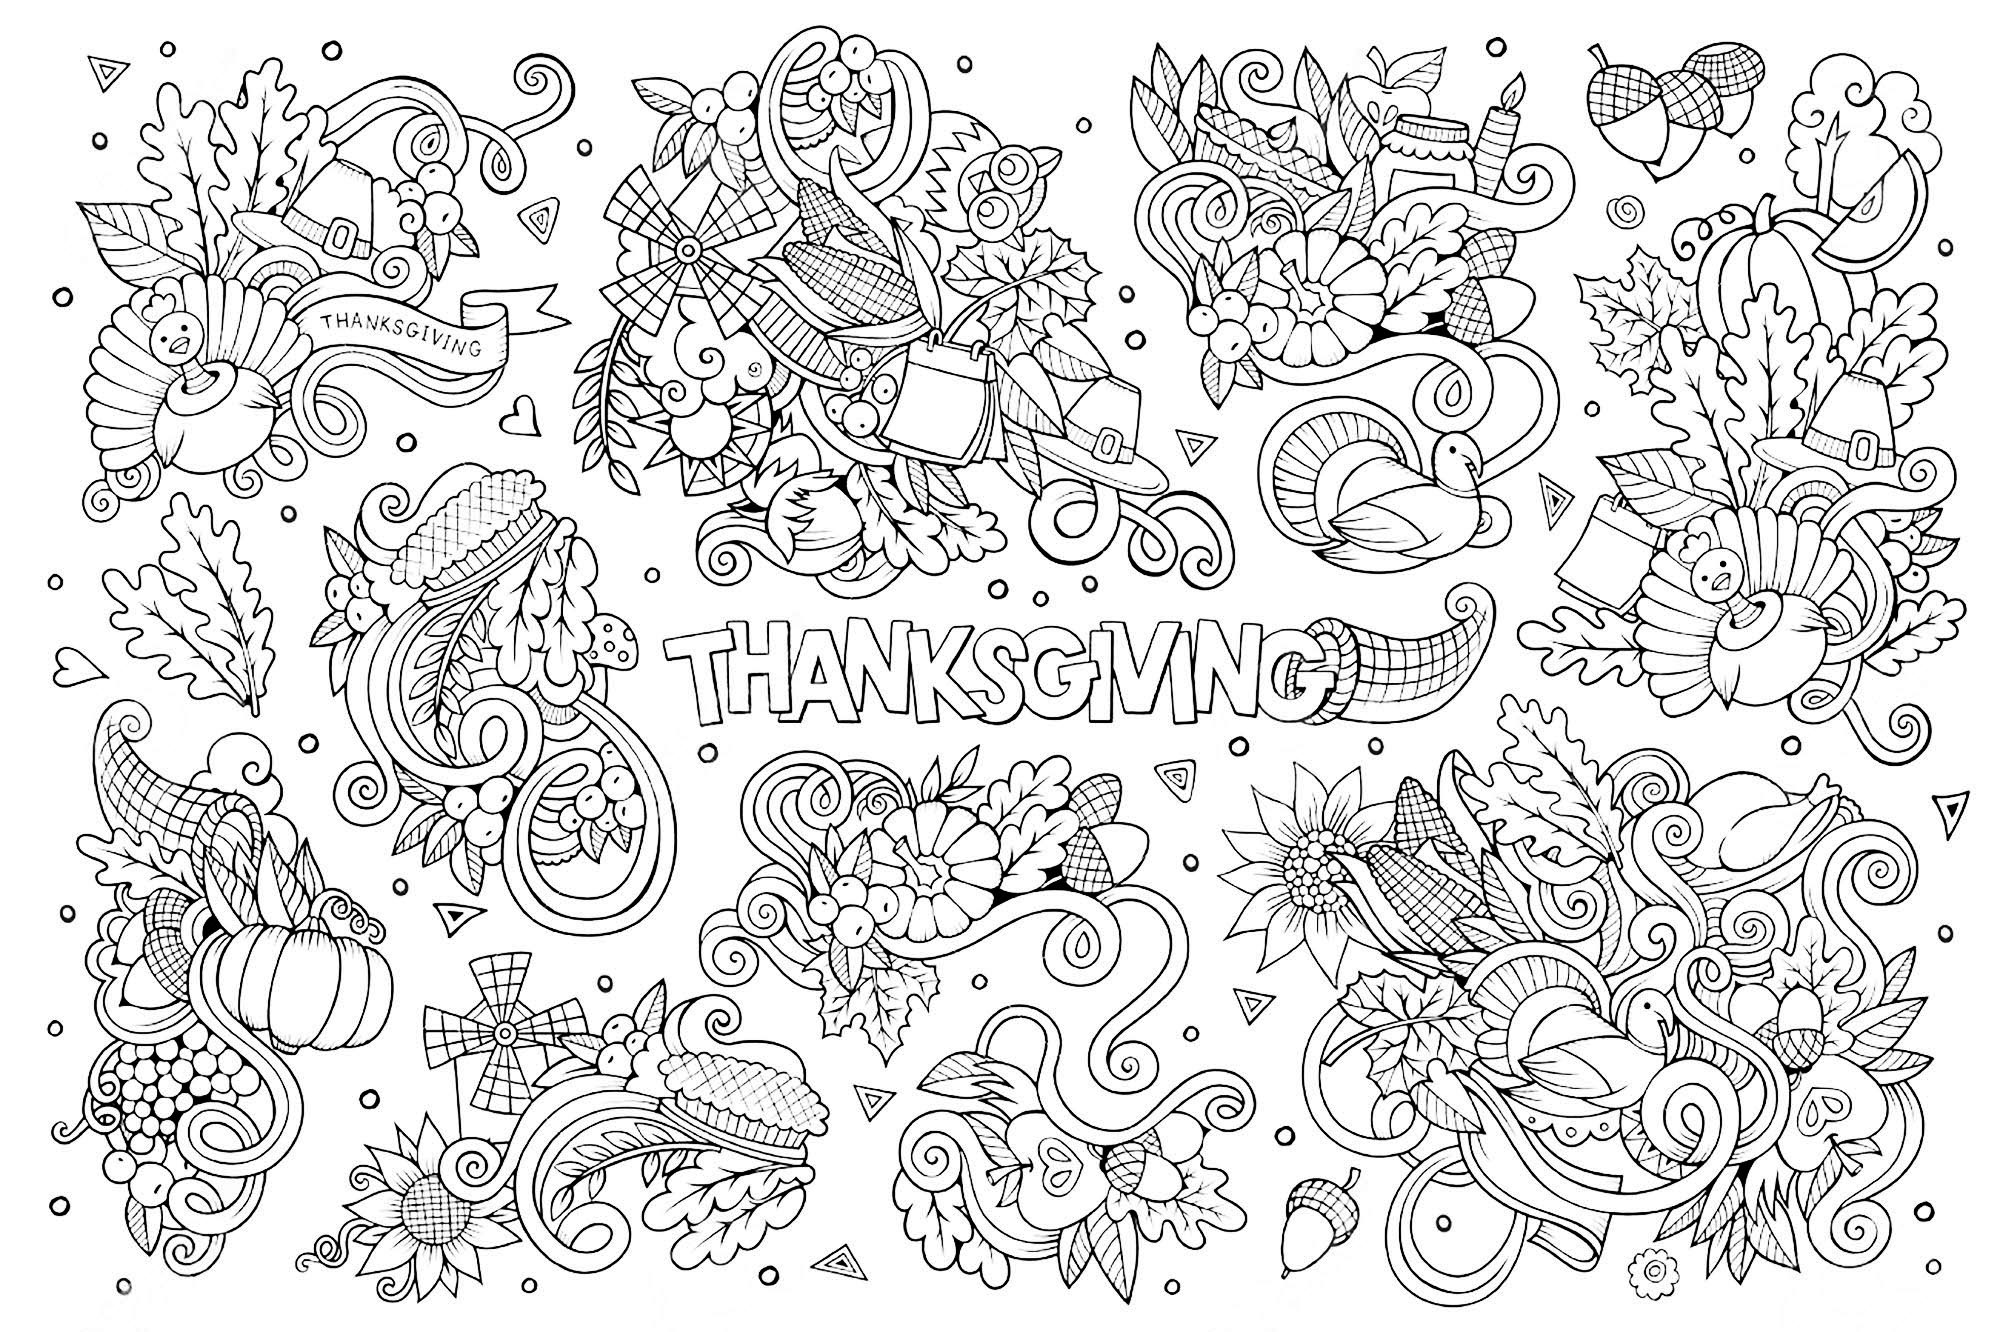 Thanksgiving Doodle 2 Thanksgiving Coloriages